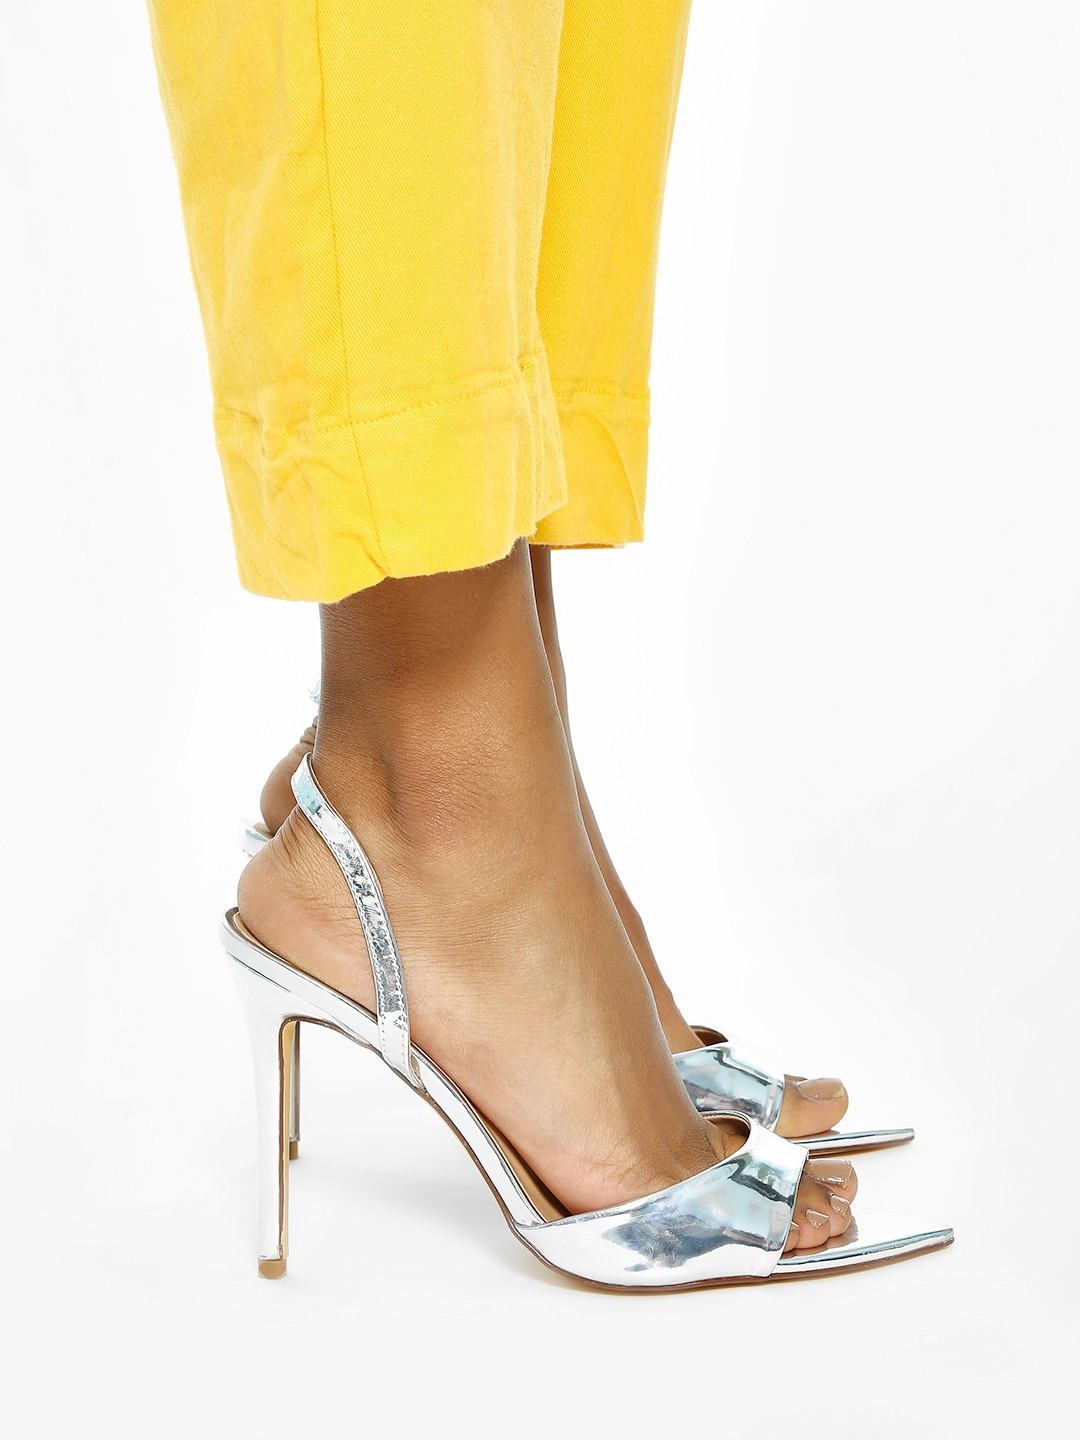 Intoto Silver Pointed Toe Metallic Patent Heeled Sandals 1